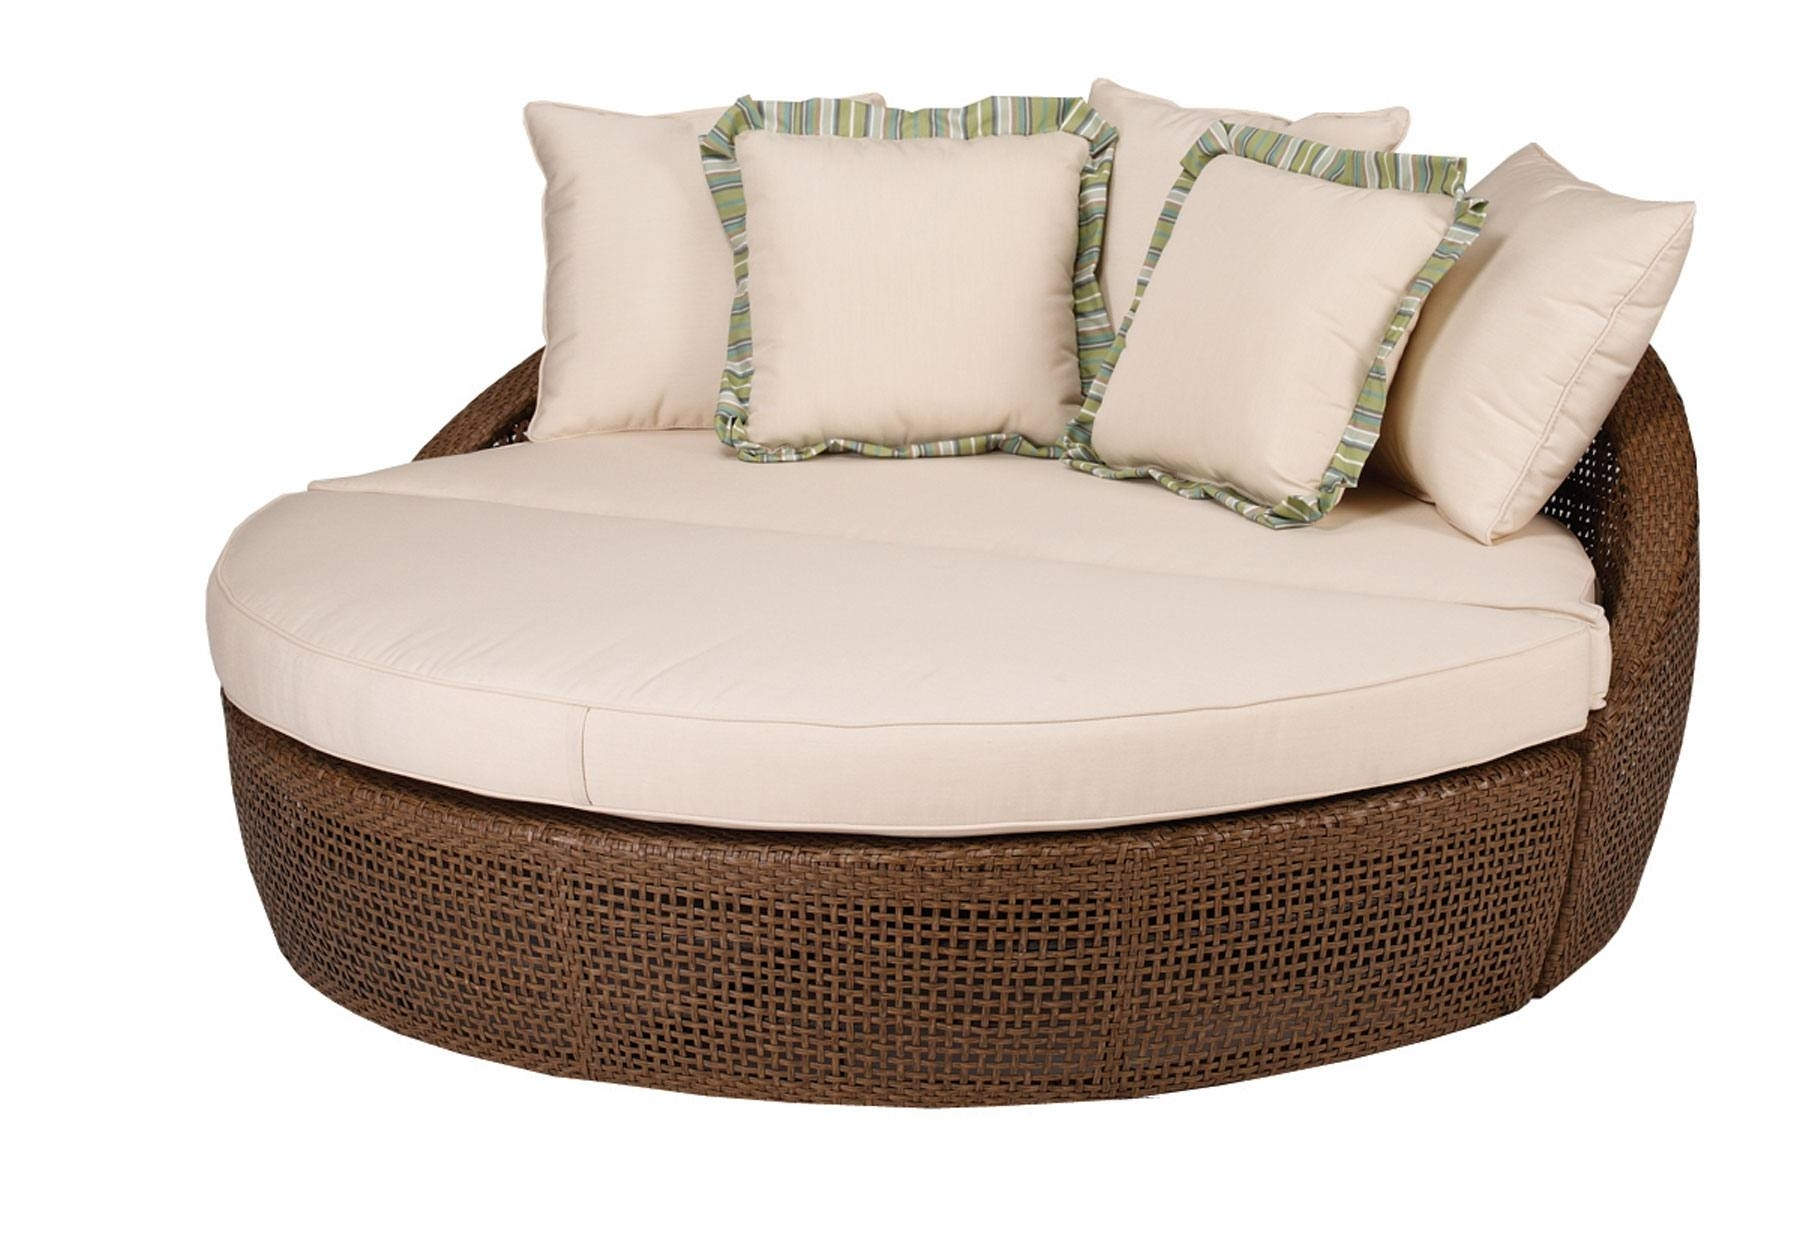 Bedroom Chaise Lounge Chairs – Myfavoriteheadache Intended For Popular Indoor Chaises (View 2 of 15)